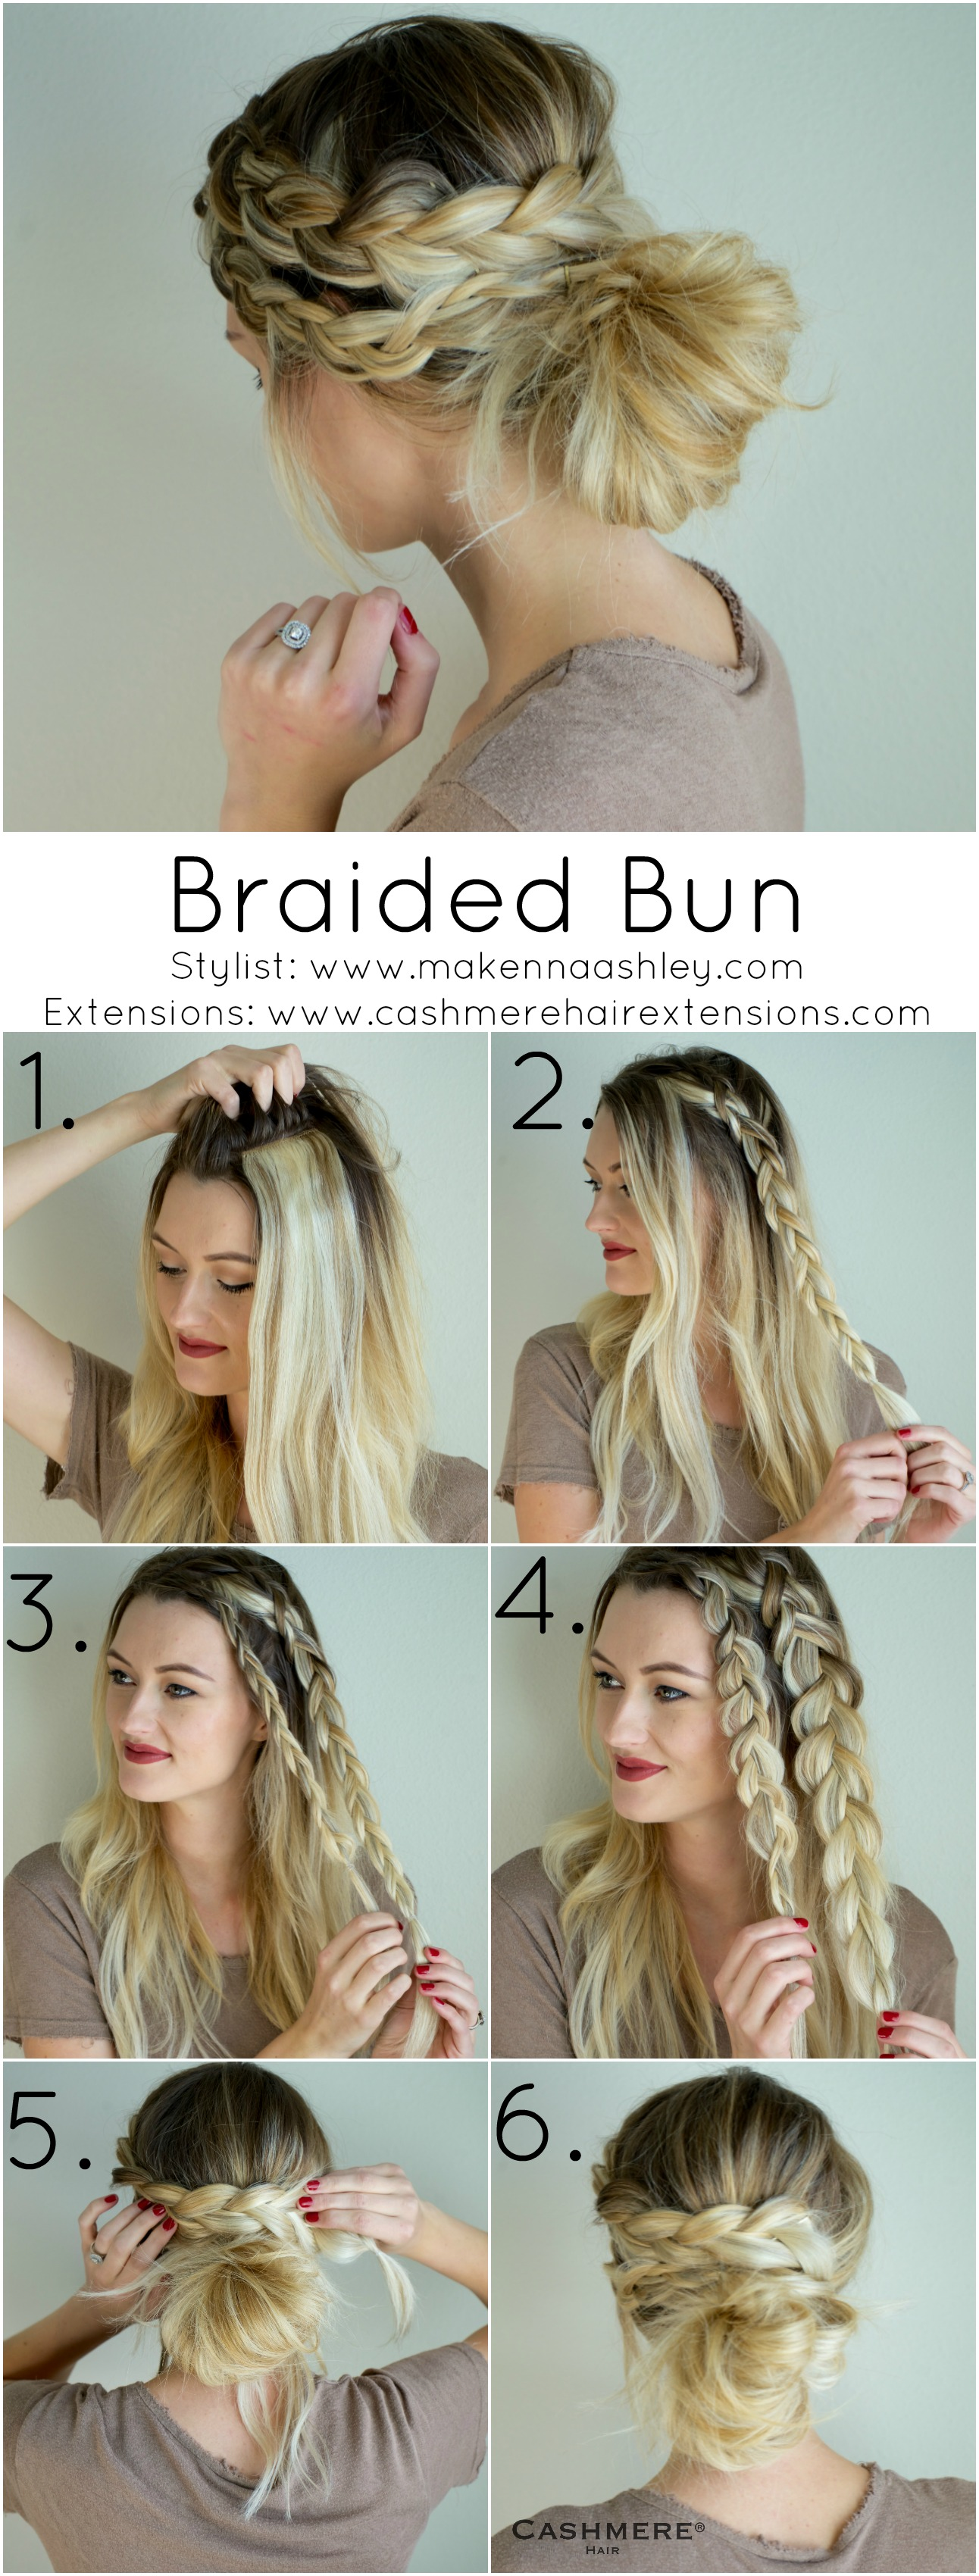 Braided Bun with Clip In Extensions